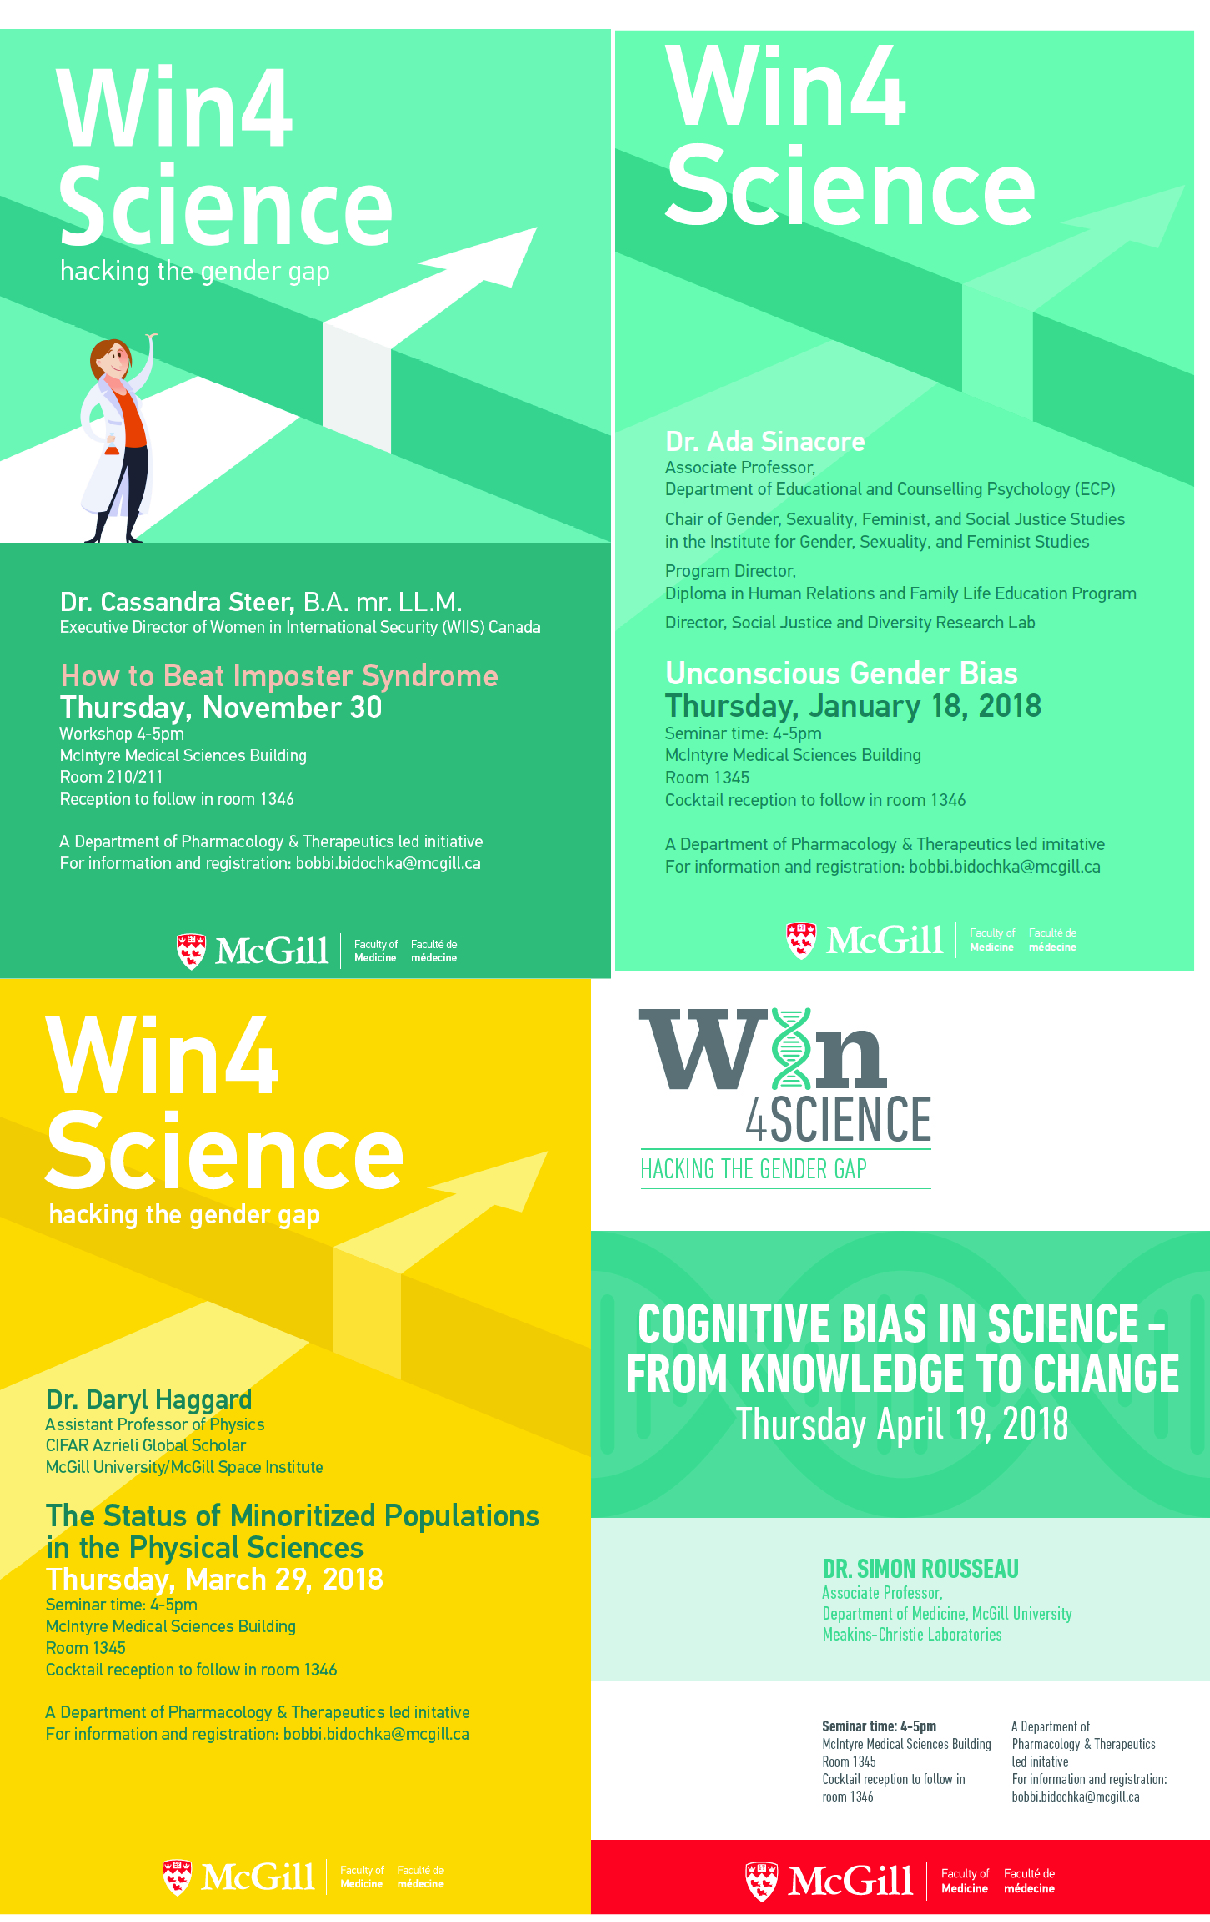 What Win4Science does - Awareness program with monthly seminars on bias and other issues.